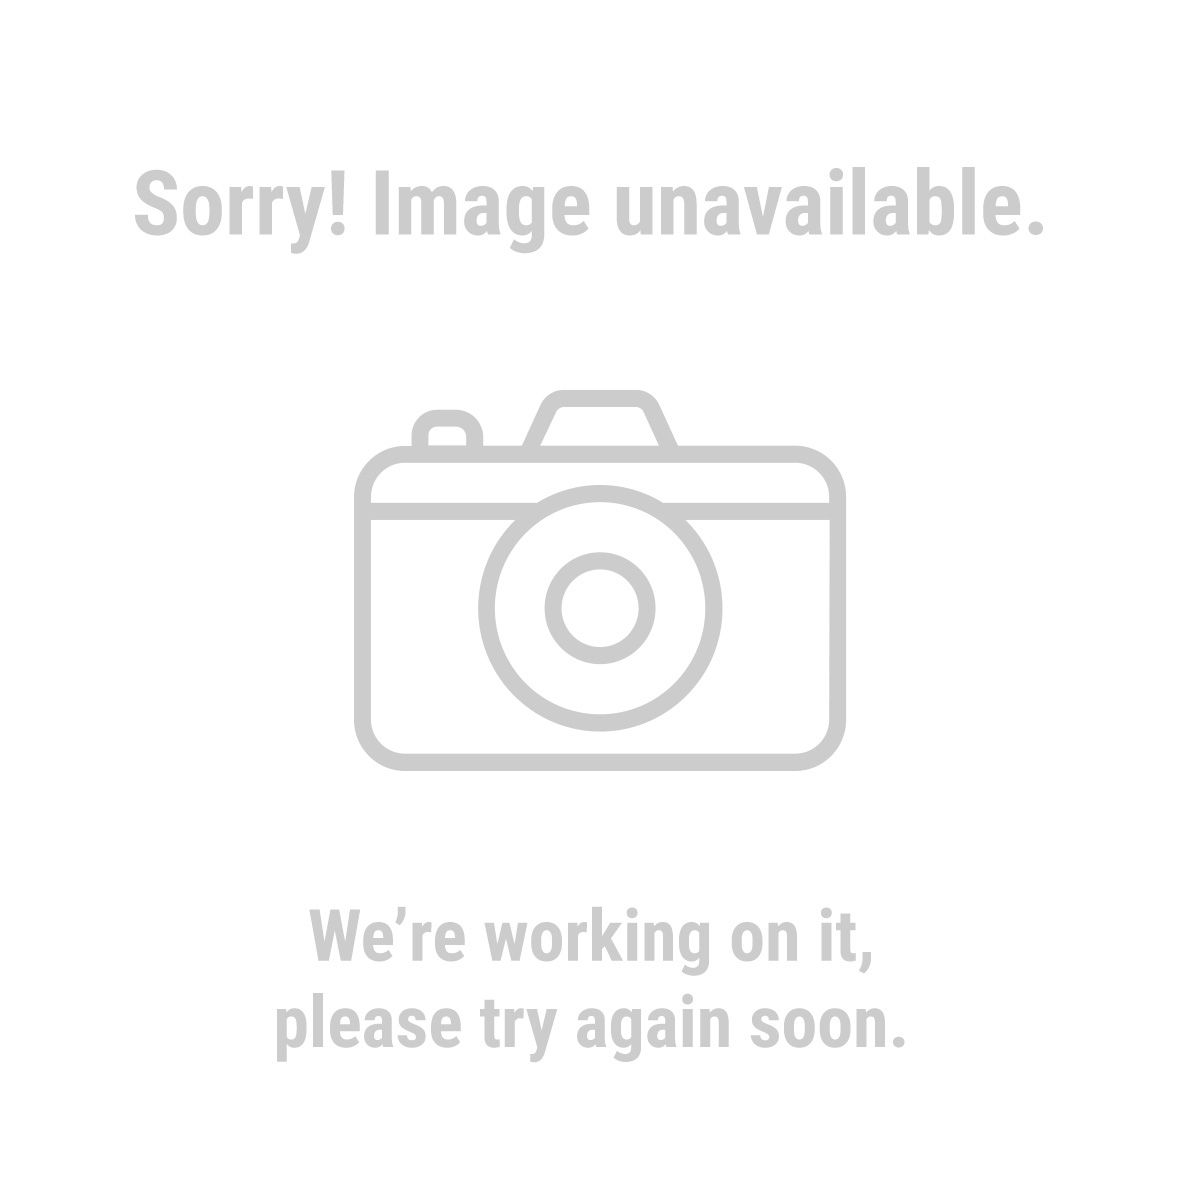 Anyone using the Badlands winches from Harbor Freight